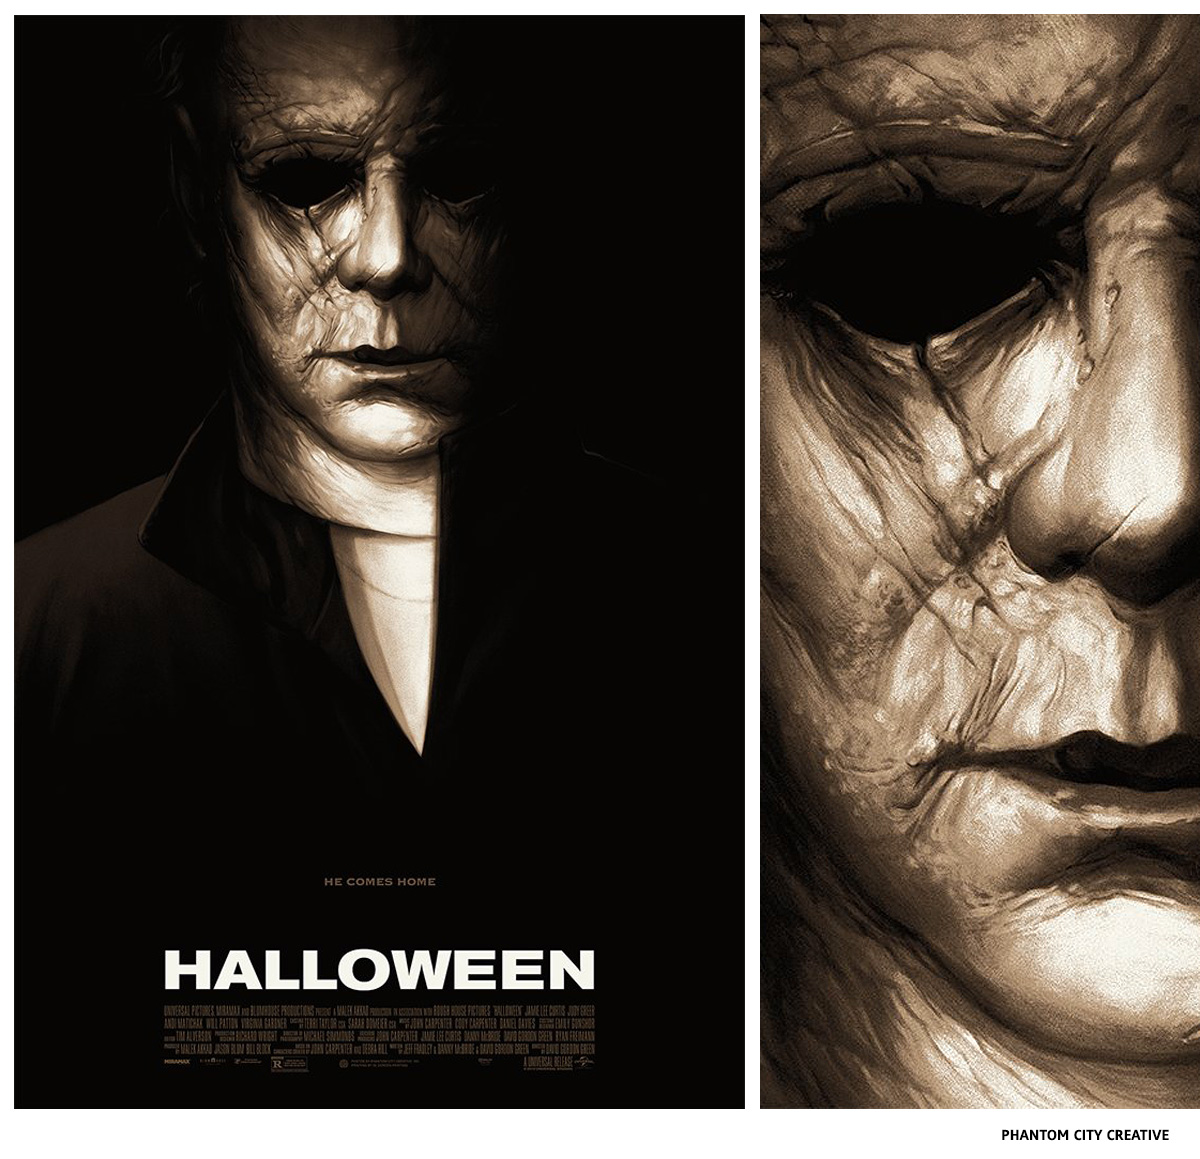 Halloween par Phantom City Creative sérigraphie affiche